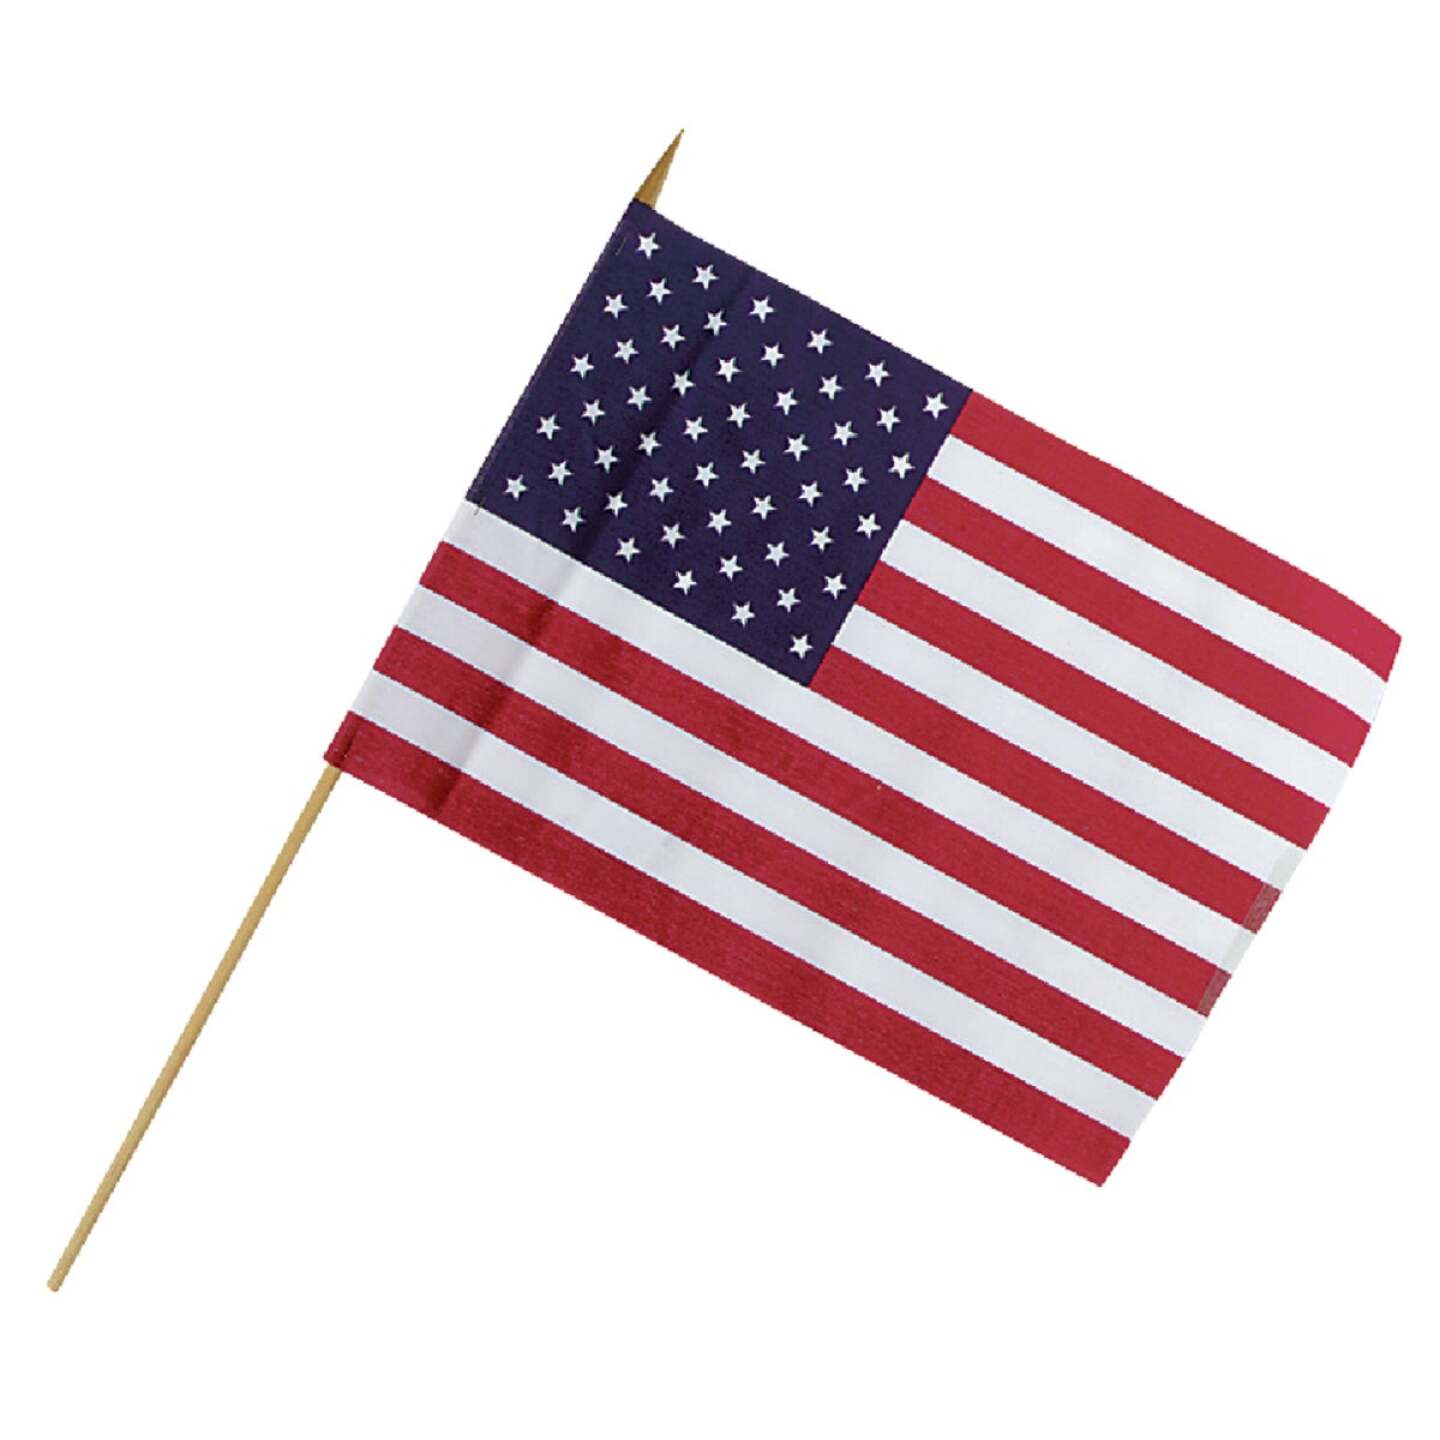 Valley Forge 12 In. x 18 In. Polycotton Stick American Flag Image 1